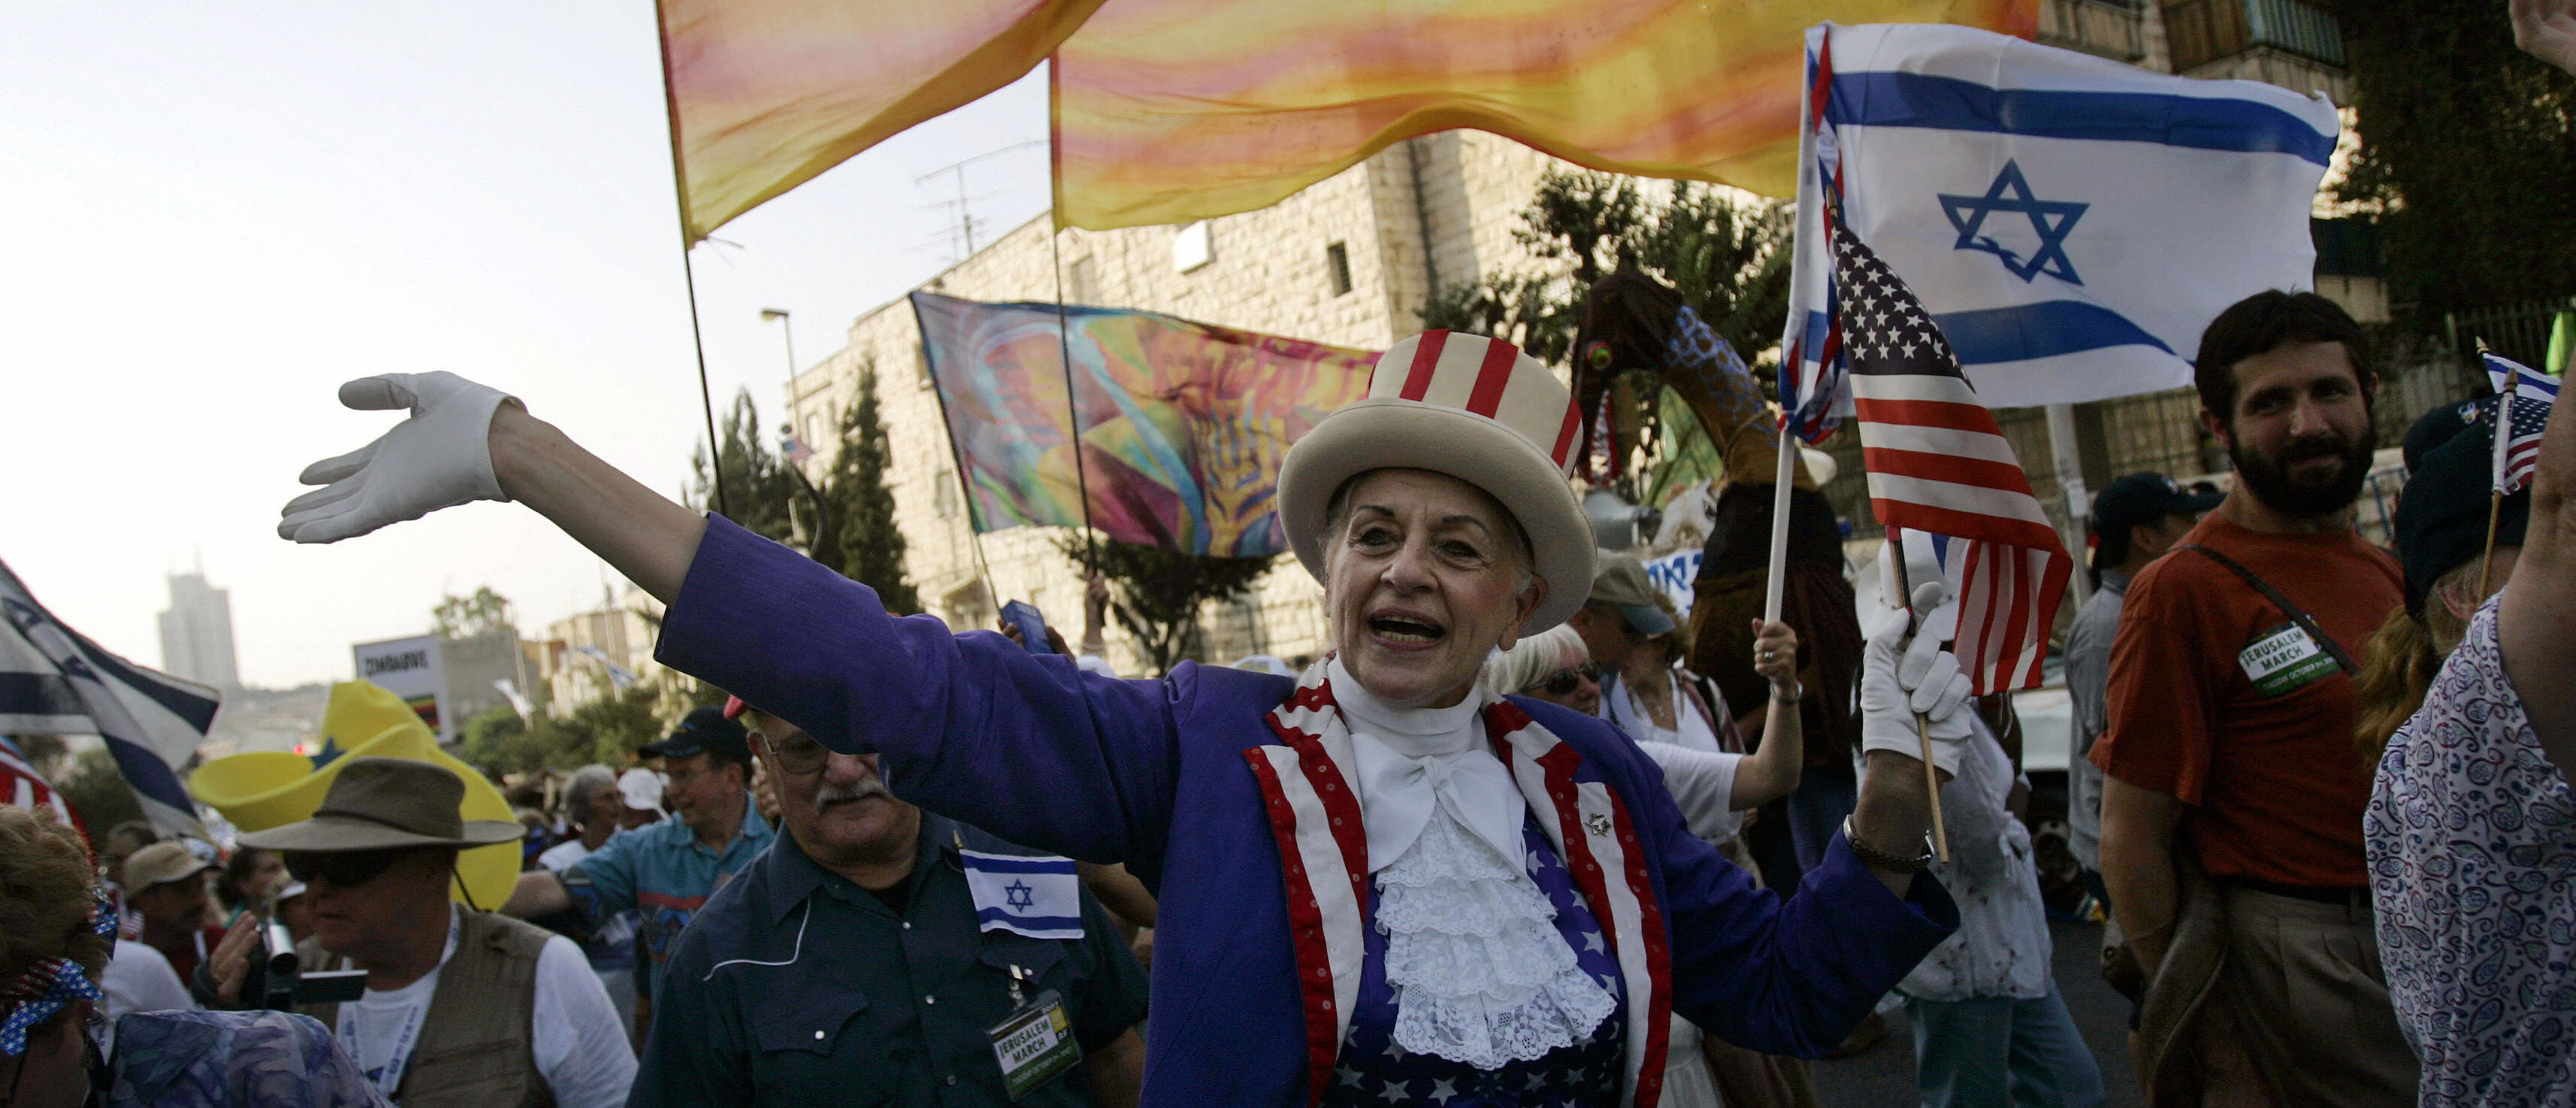 """A Christian Evangelical from the United States, dressed in an """"Uncle Sam"""" costume, waves to onlookers during a parade in celebration of the Jewish holiday of Sukkoth, in downtown Jerusalem 02 October 2007. Thousands of Christian Evangelical supporters of the Jewish state marched today during their annual parade marking the Jewish holiday of Sukkoth or the Feast of the Tabernacles. AFP PHOTO/DAVID FURST (Photo credit should read DAVID FURST/AFP/Getty Images)"""